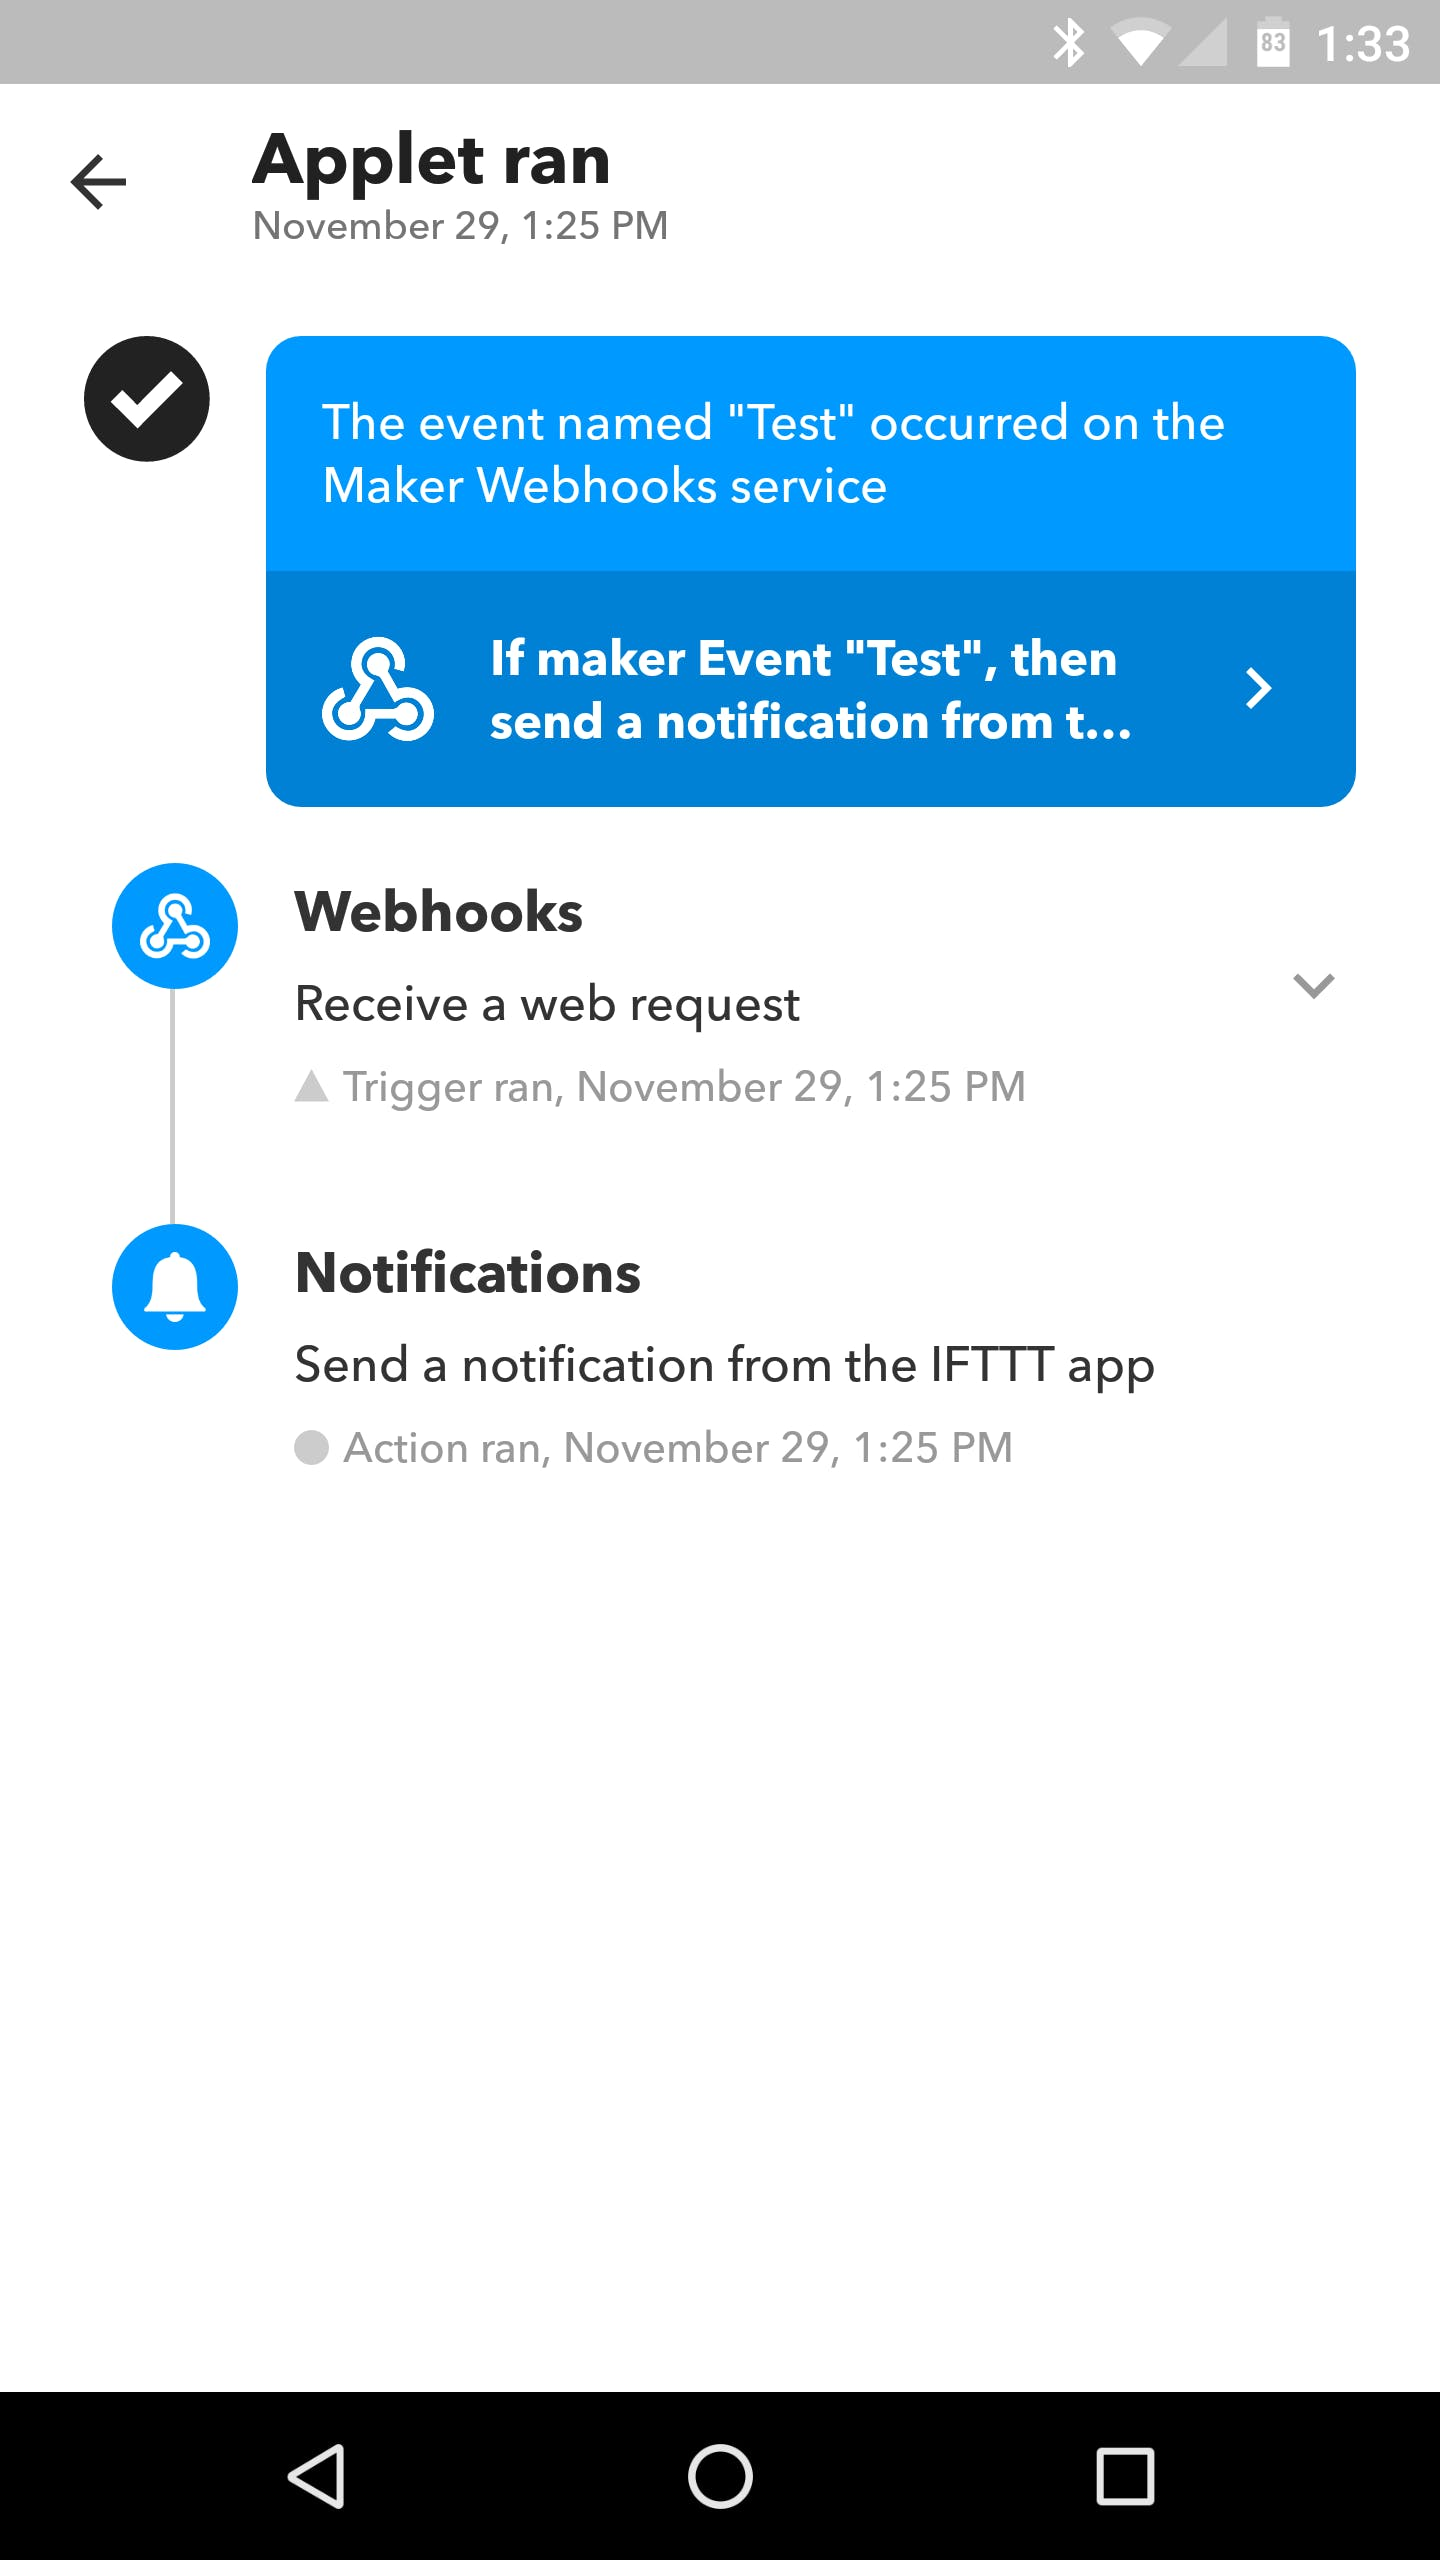 IFTTT Mobile App Notification: Detailed View